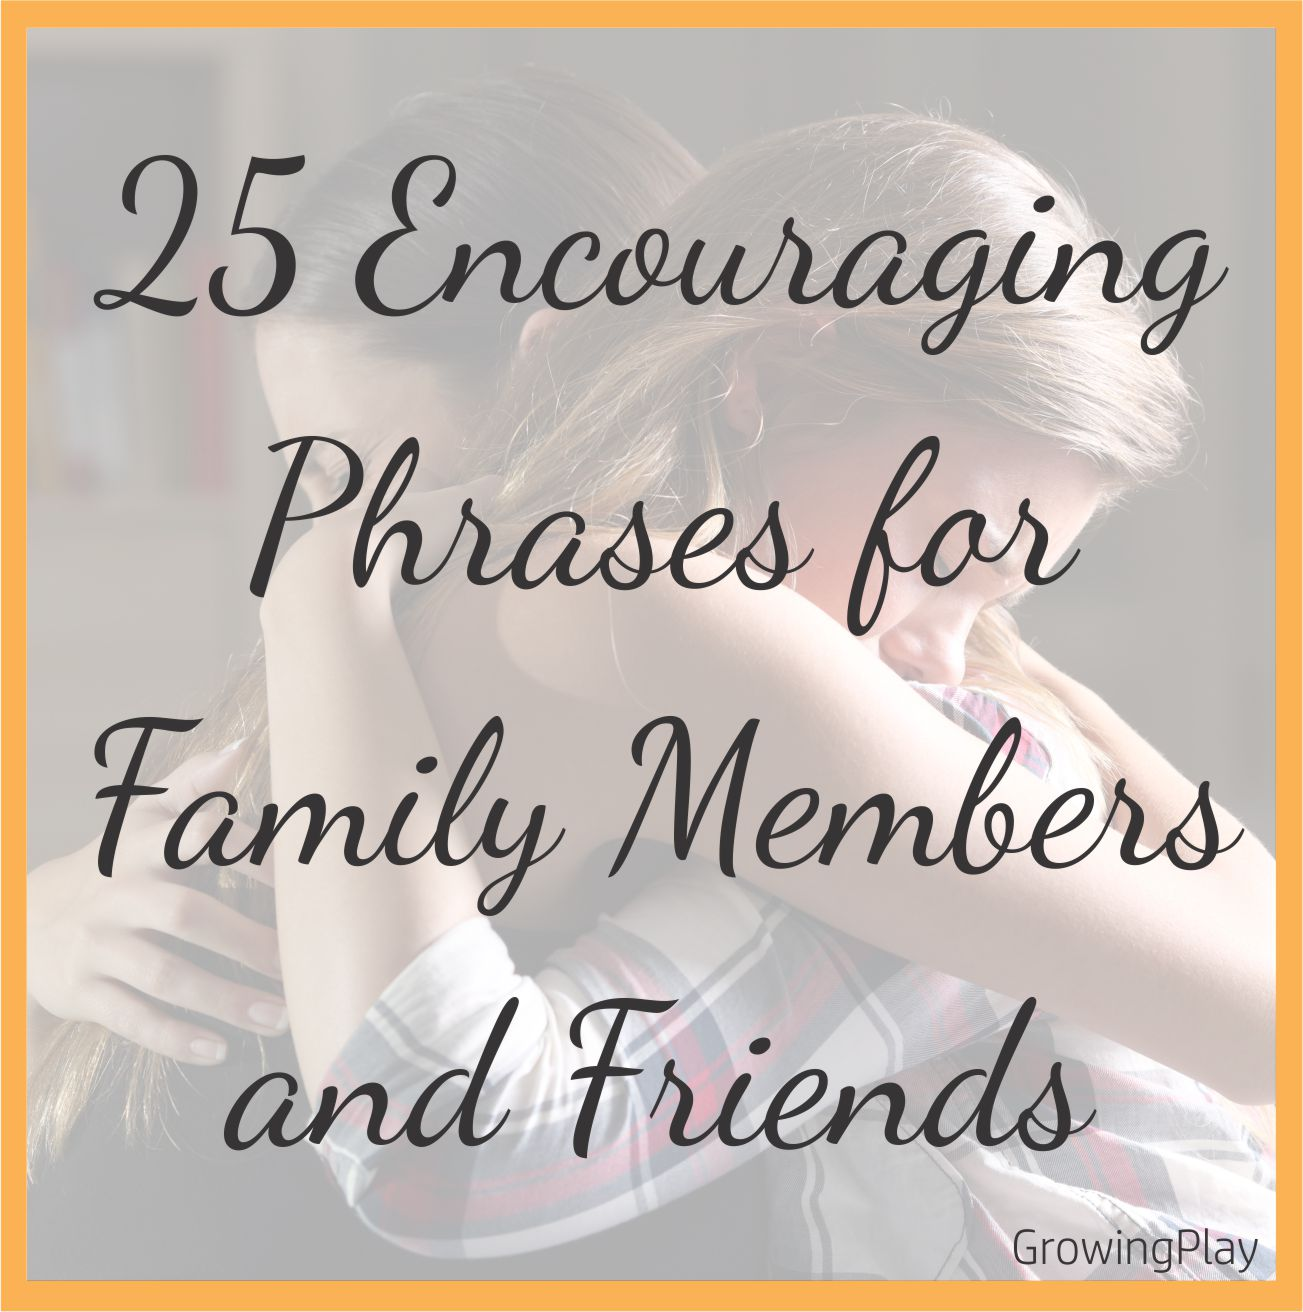 Do you know someone who is struggling?  Maybe you know someone who needs a little encouragement to keep striving to reach their goals?  Perhaps you have a teenager in your life who could use some support right now.  Here are 25 encouraging phrases for family members and friends.